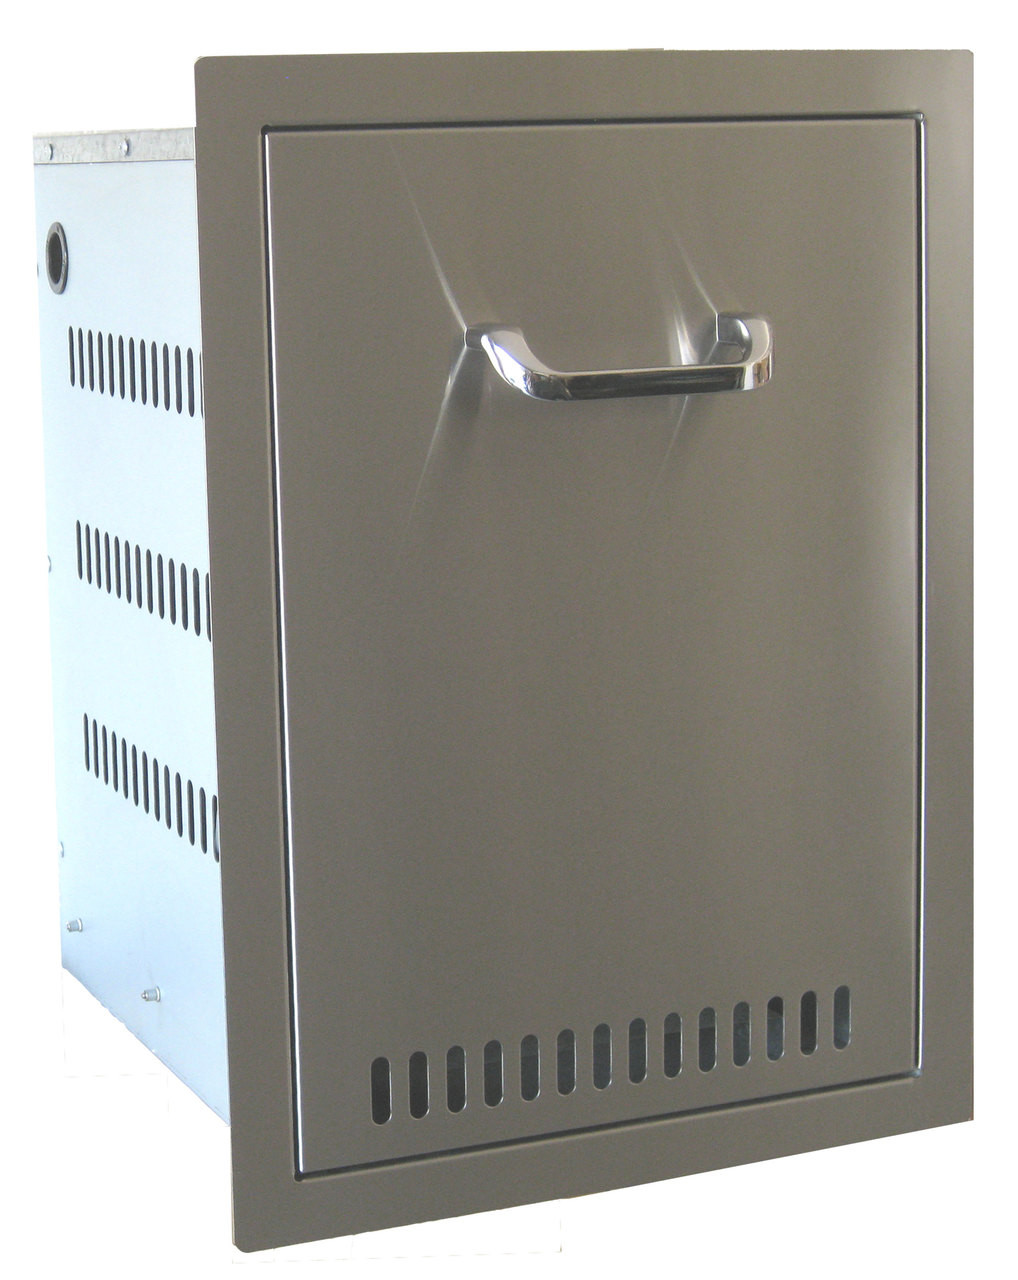 Beefeater Stainless Steel Built-in Propane Tank Drawer - 24210